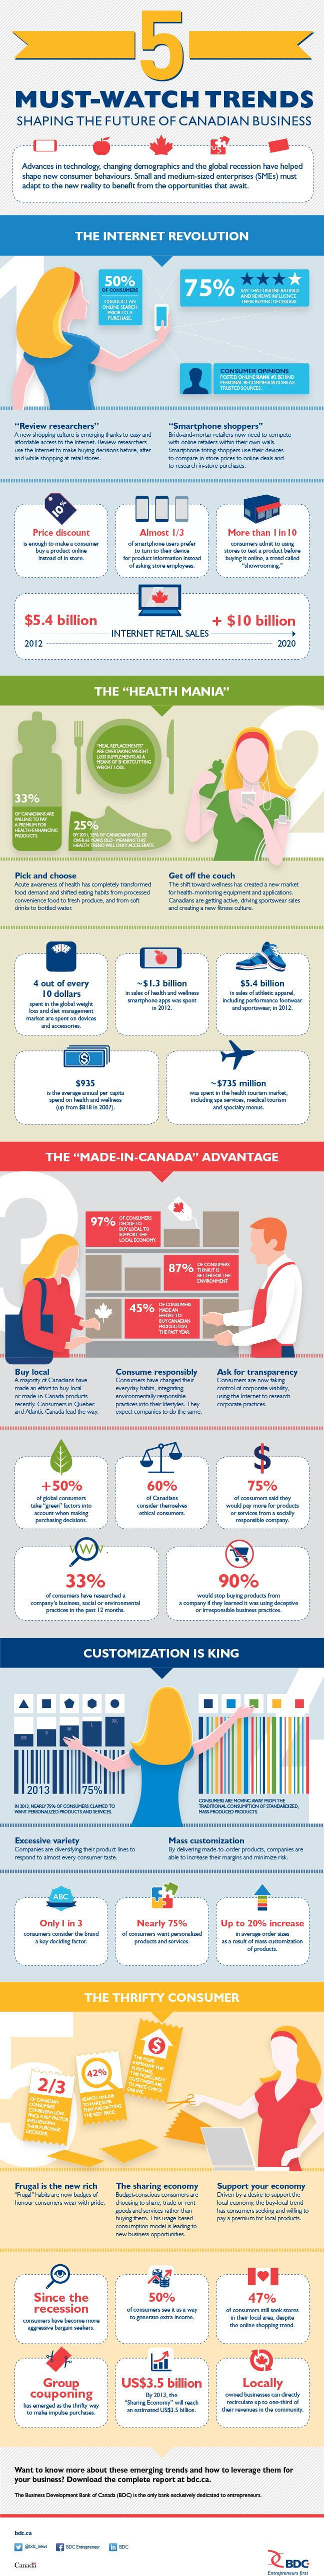 Five must-watch trends shaping the future of Canadian business (infographic)